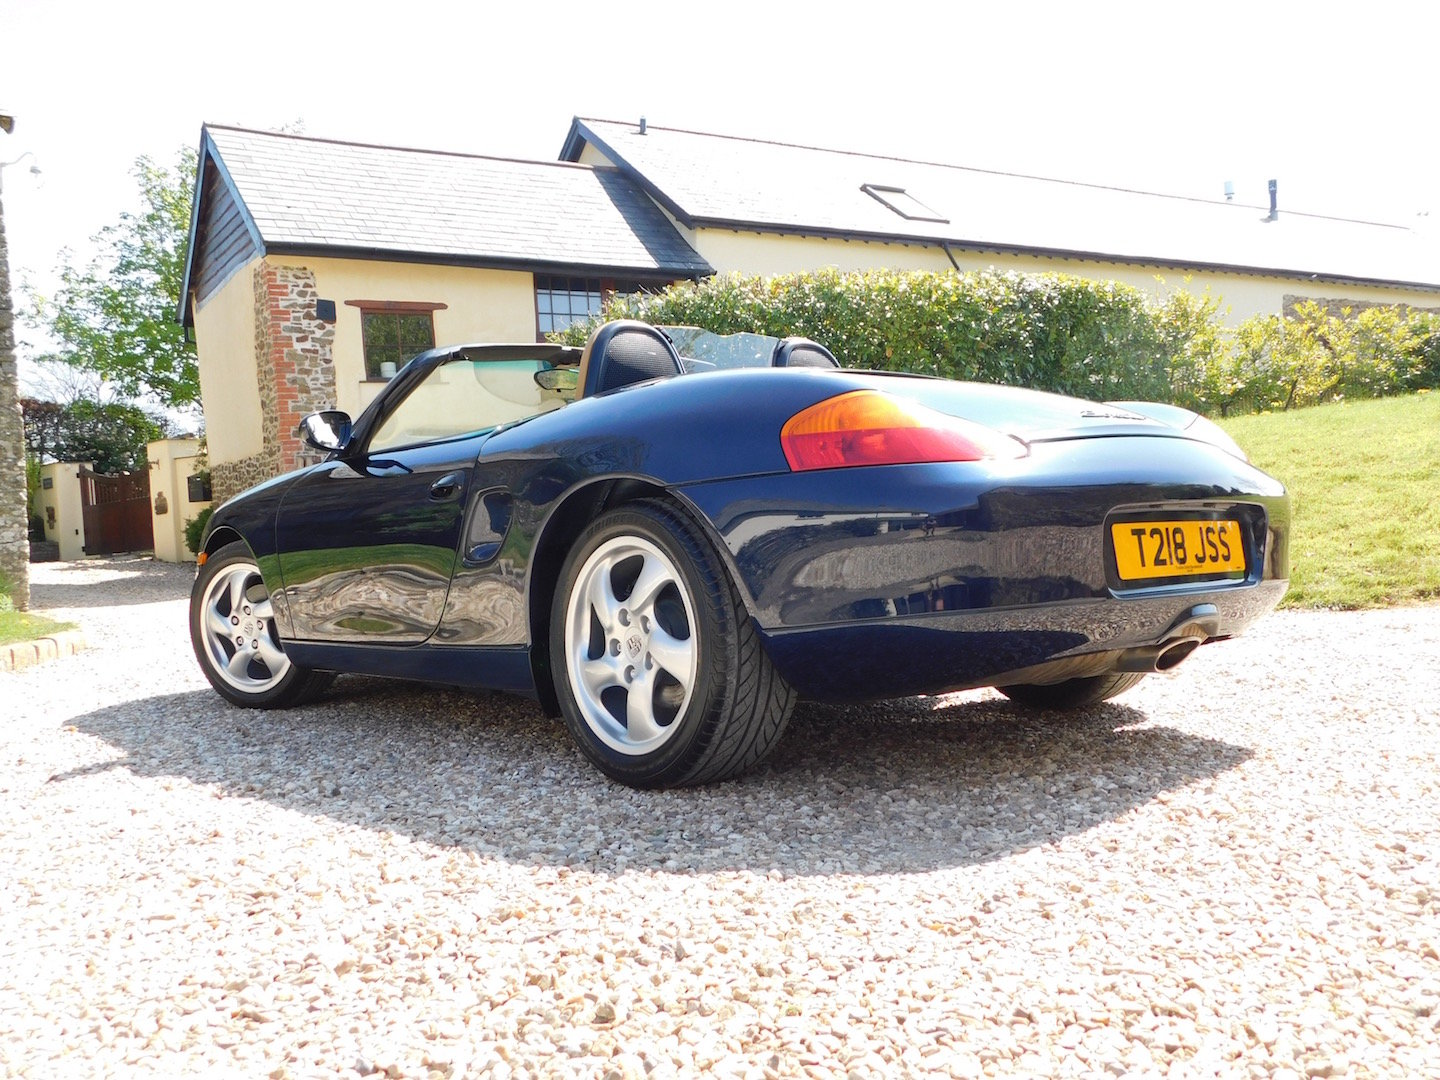 1999 Porsche Boxster 2.5 manual - 16k miles, 2 owners, incredible SOLD (picture 3 of 6)